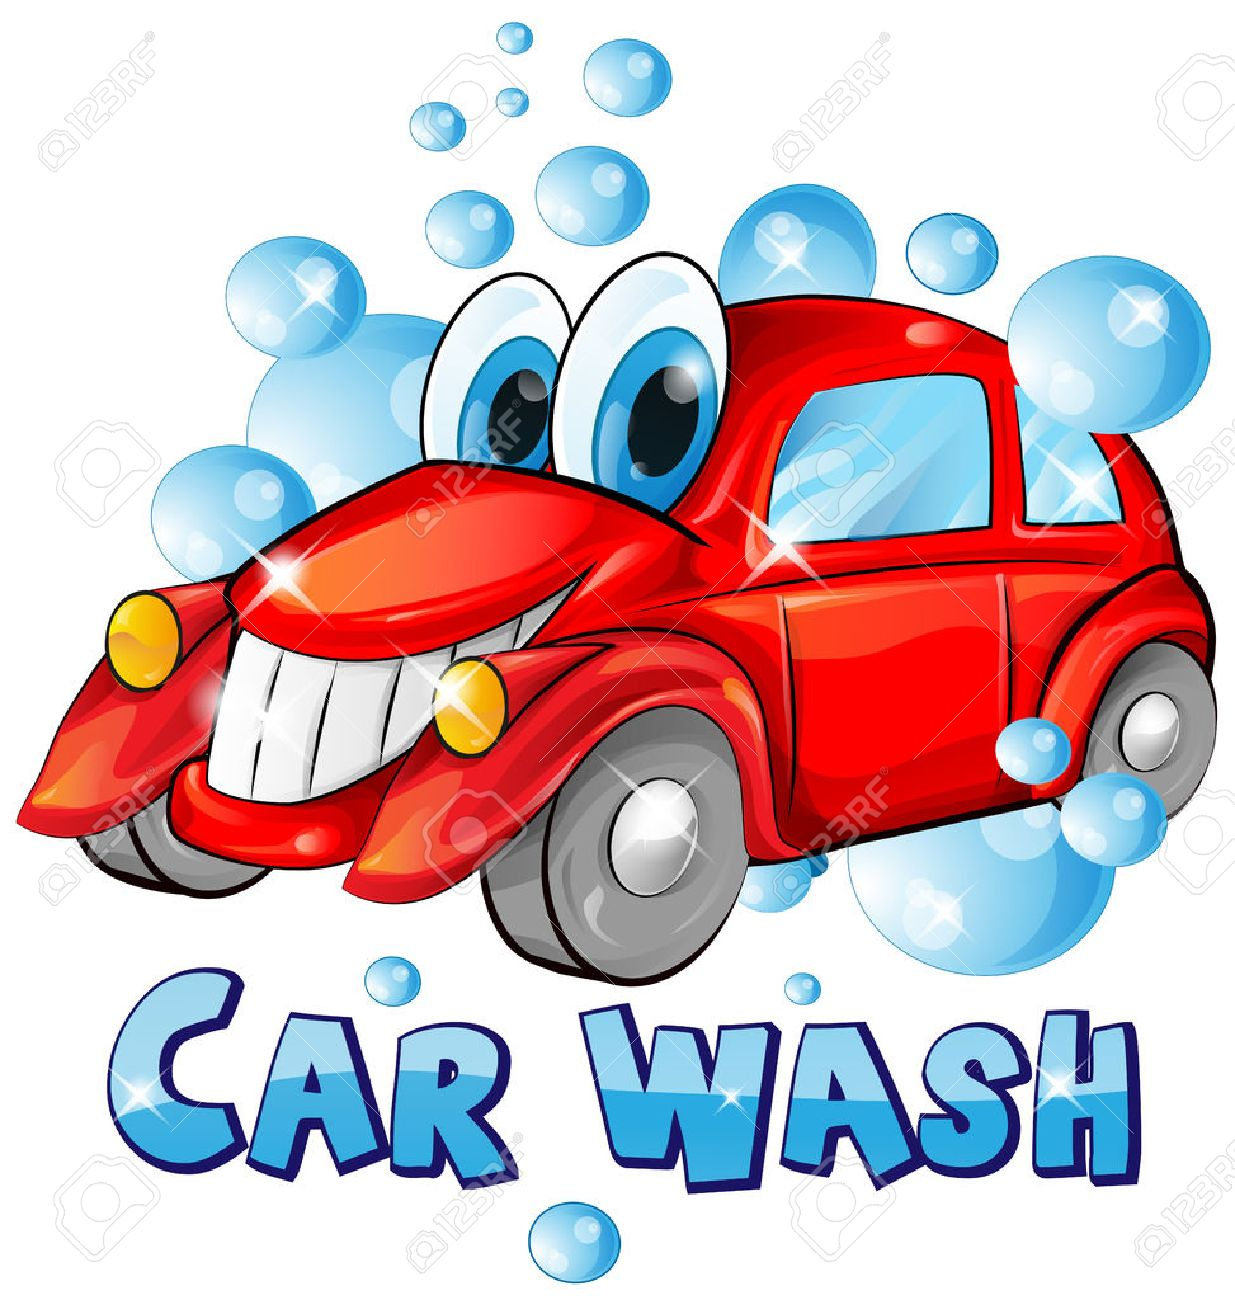 Car wash clipart free 4 » Clipart Station.